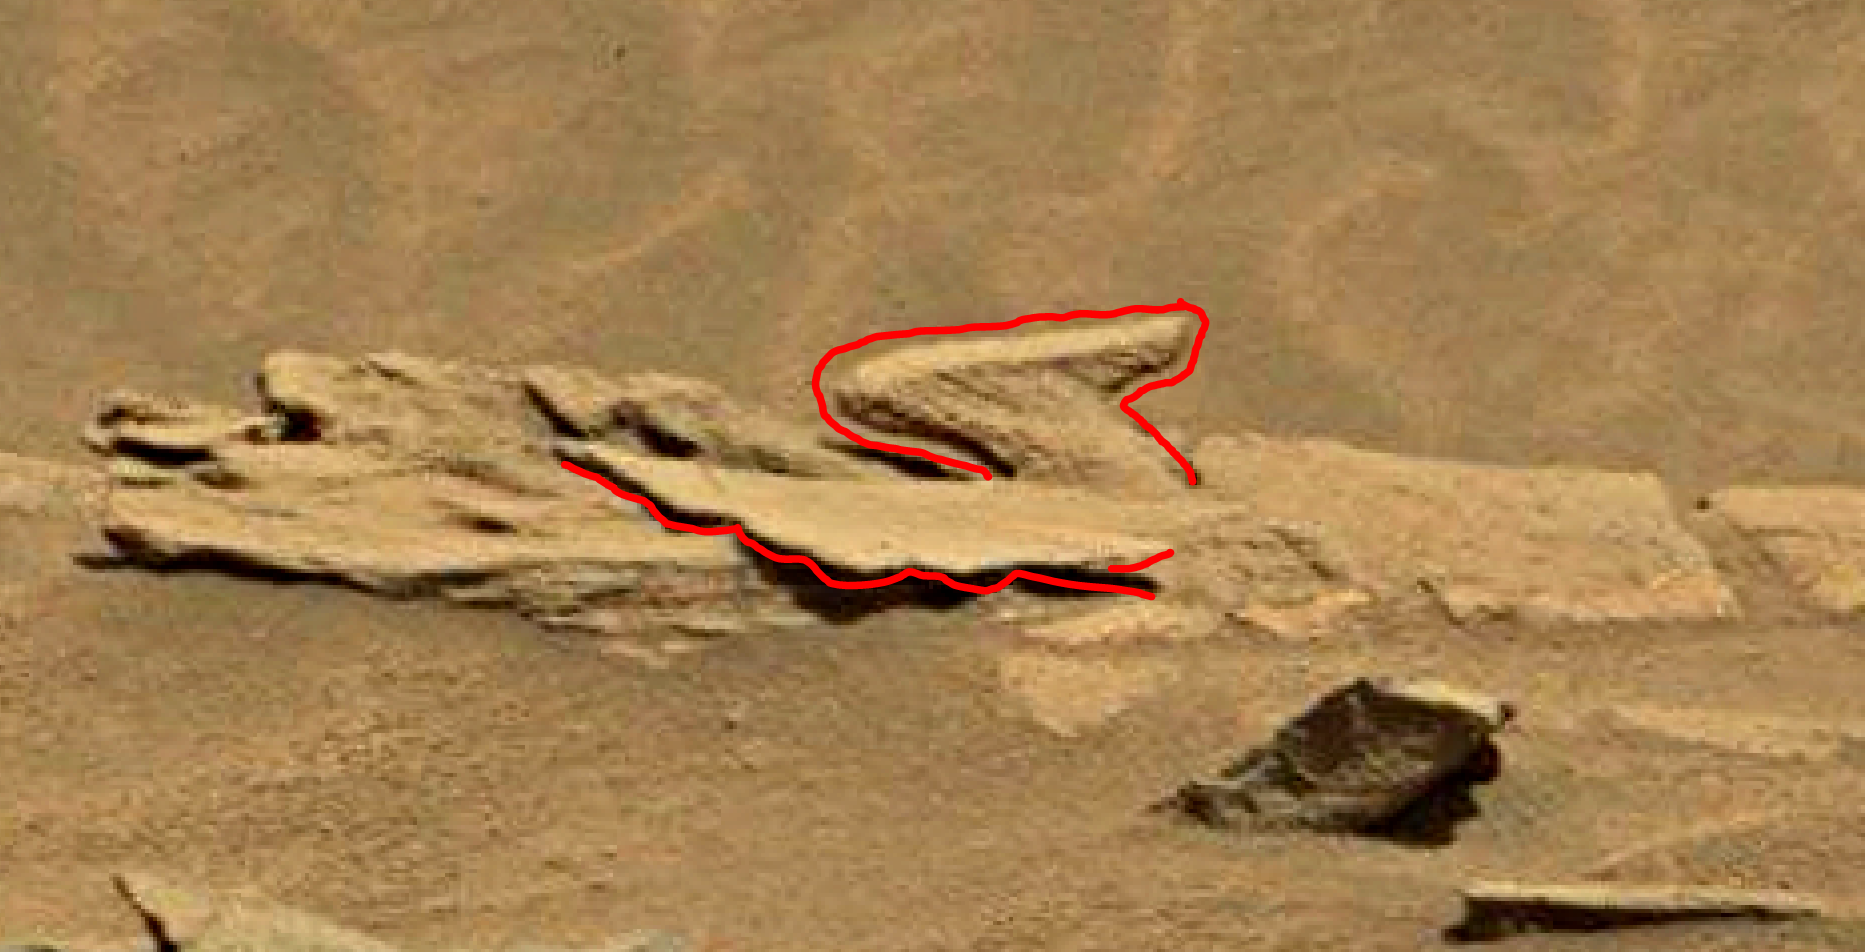 mars sol 1346 anomaly-artifacts 4a was life on mars